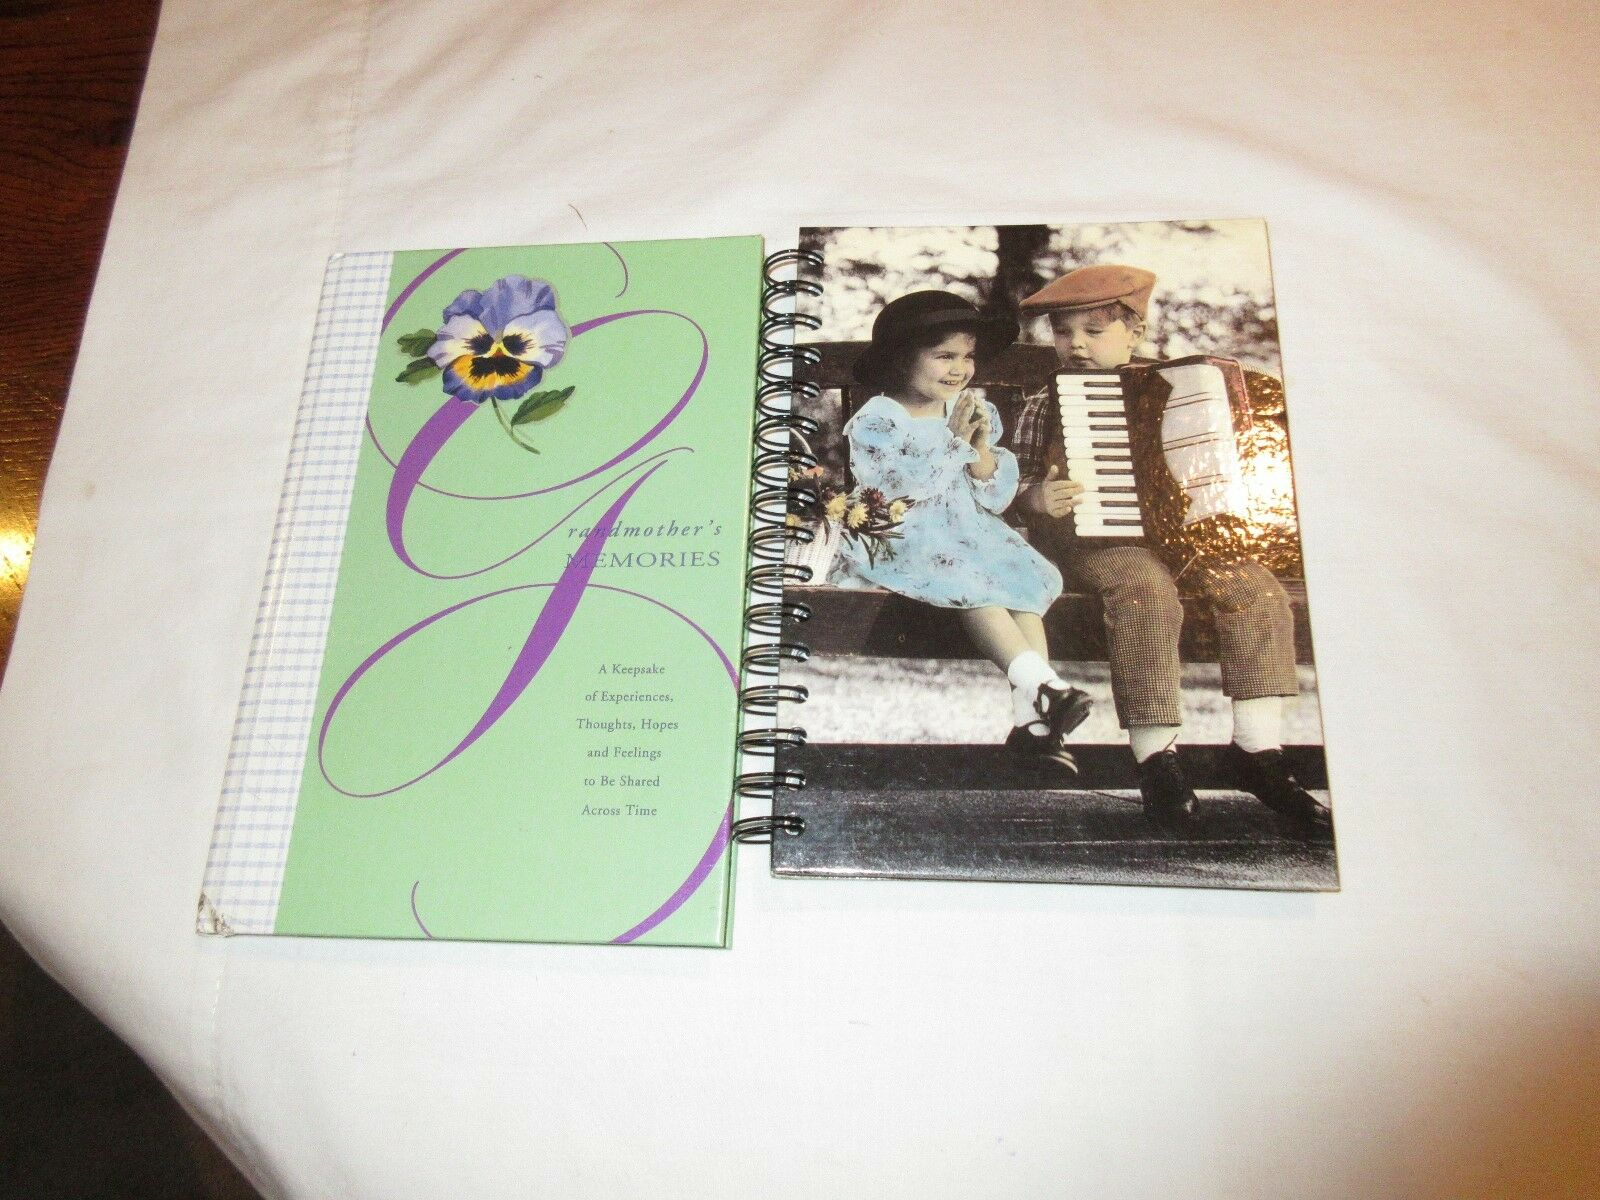 Journals, 2 Kids On Cover and Granmother's Memories